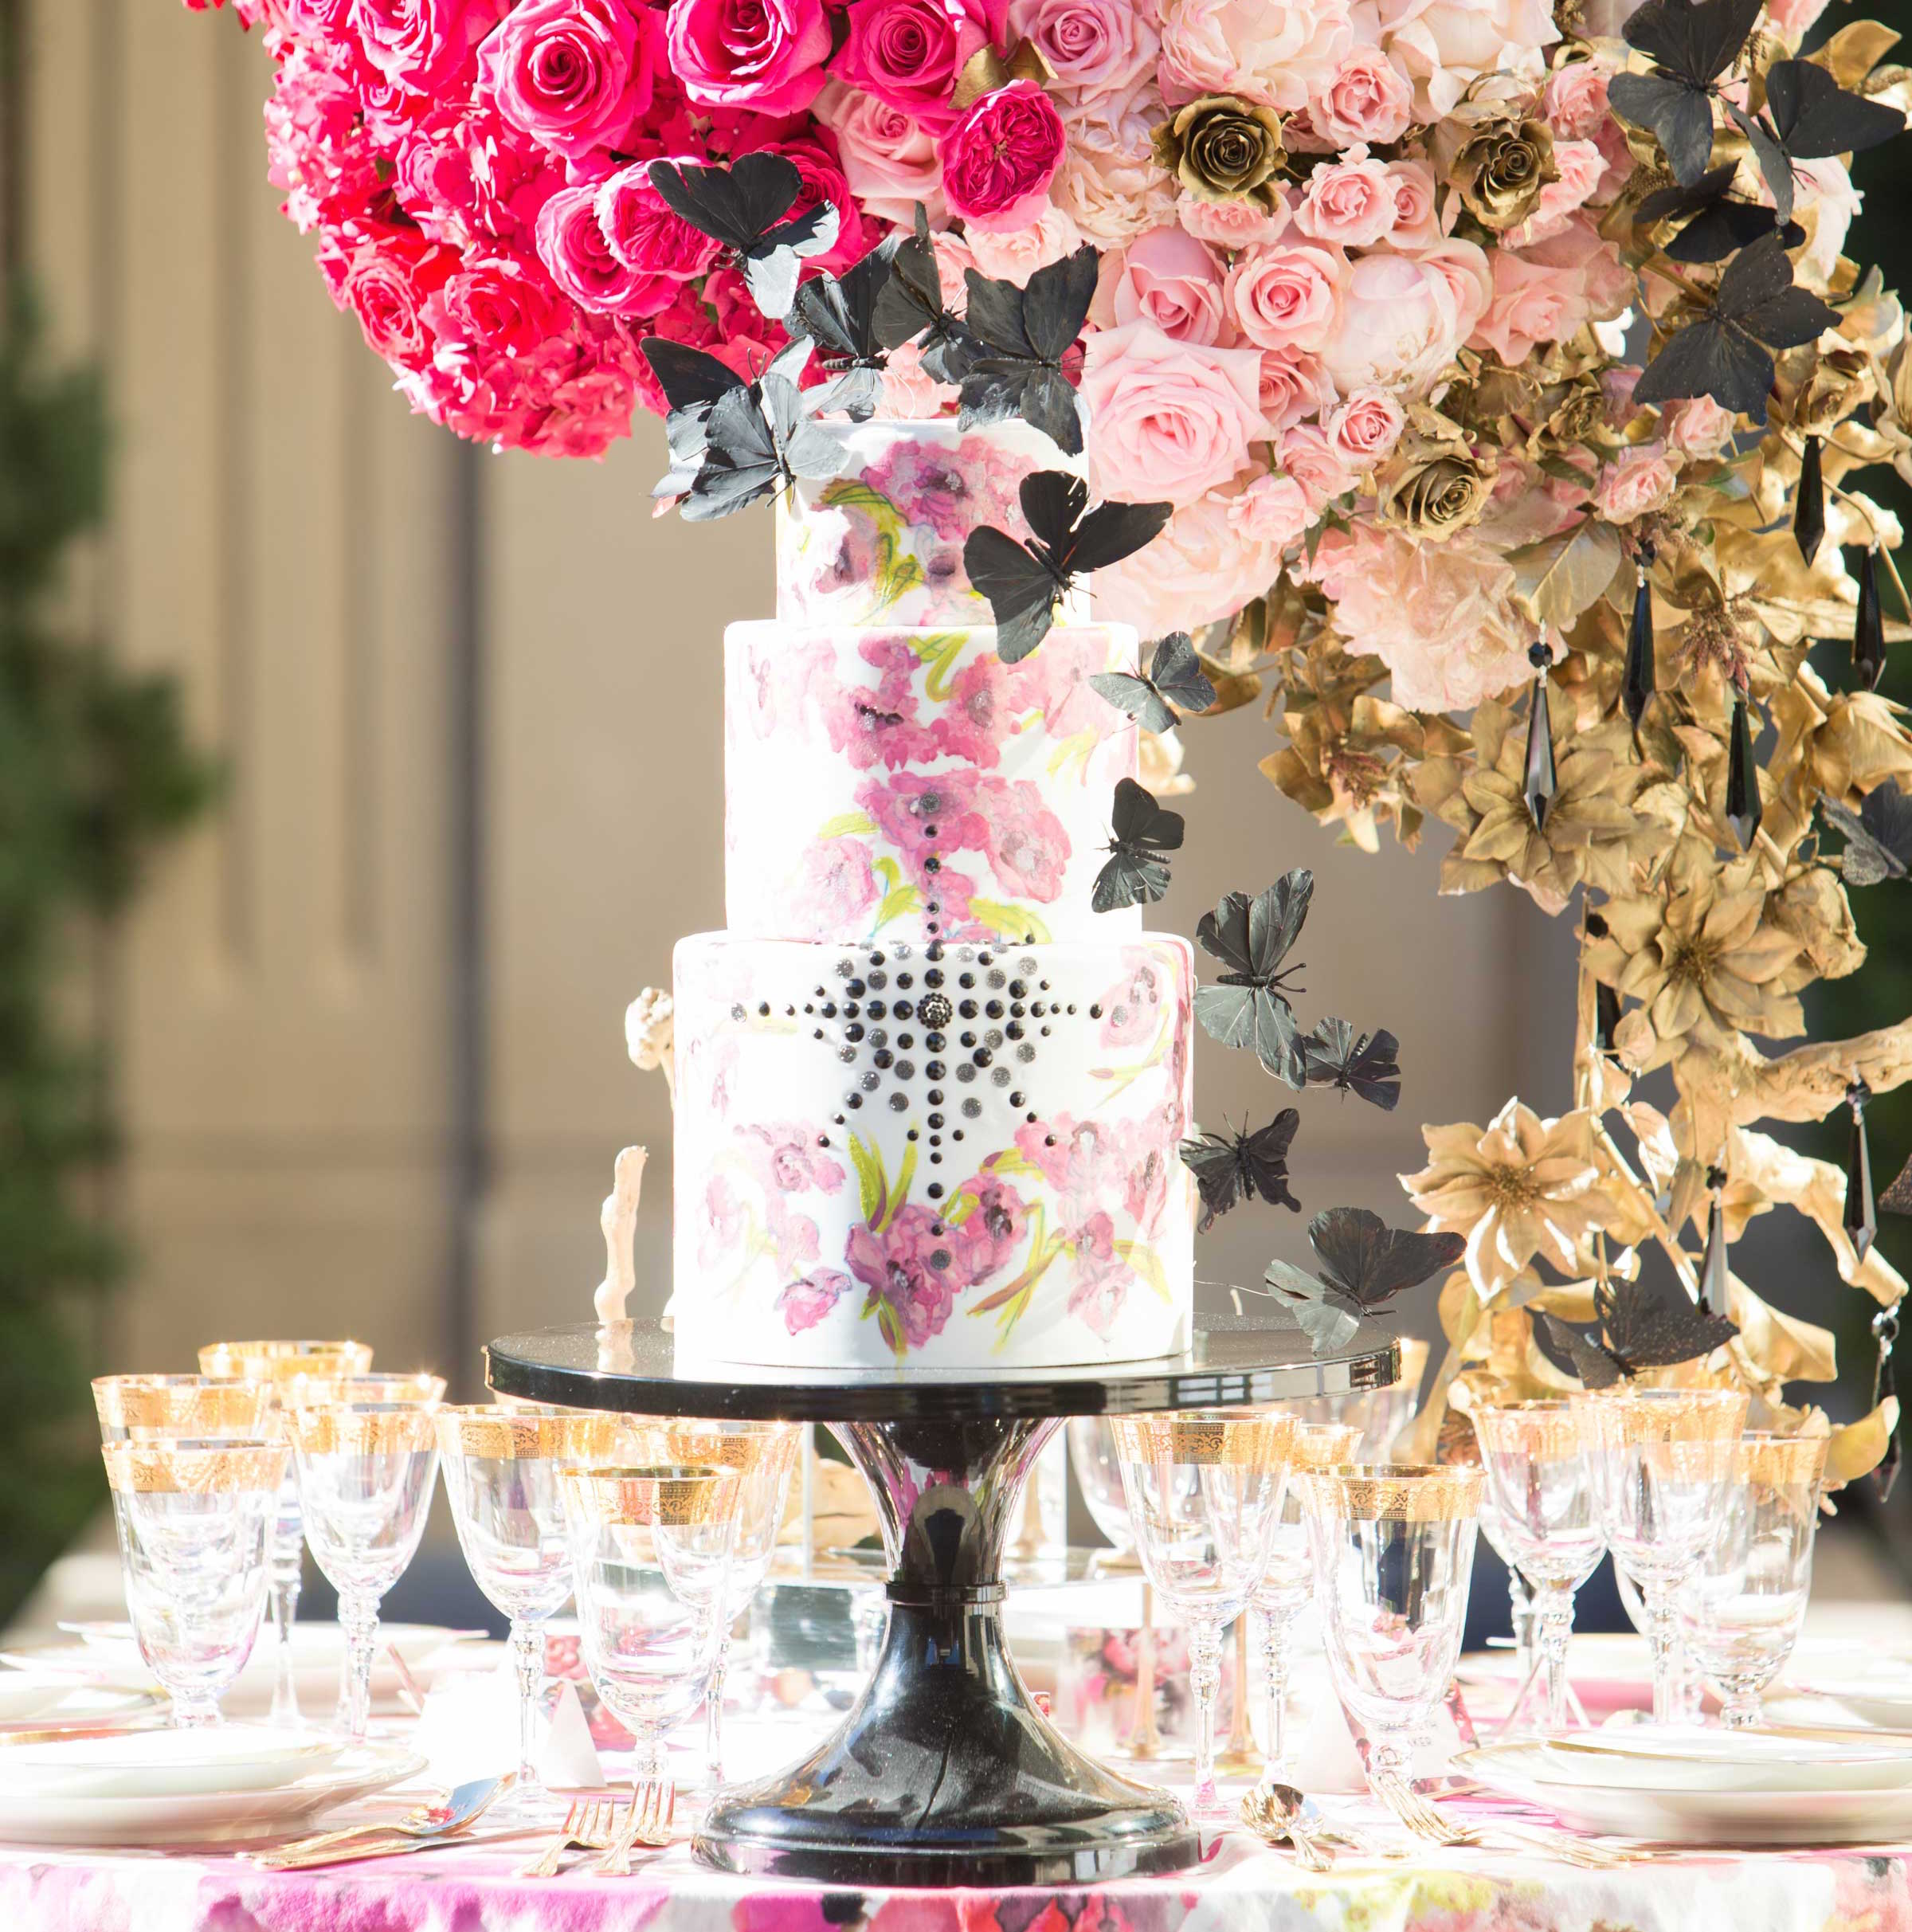 White wedding cake with pink flower watercolor design and black butterfly decals